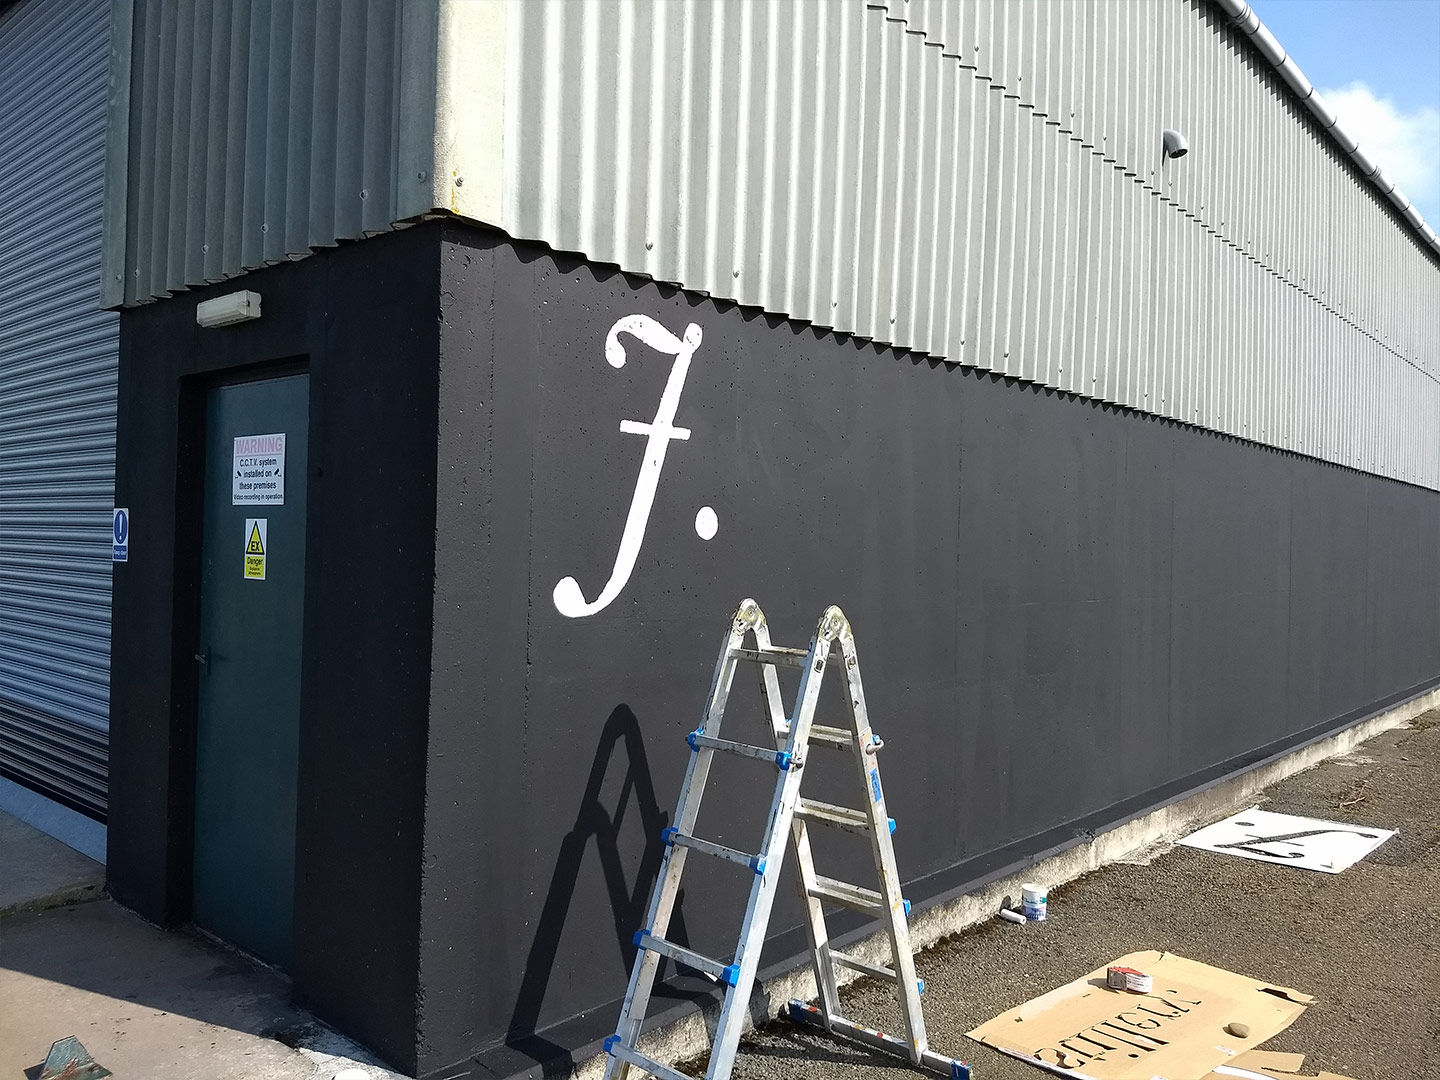 j gow rum distillery being painted